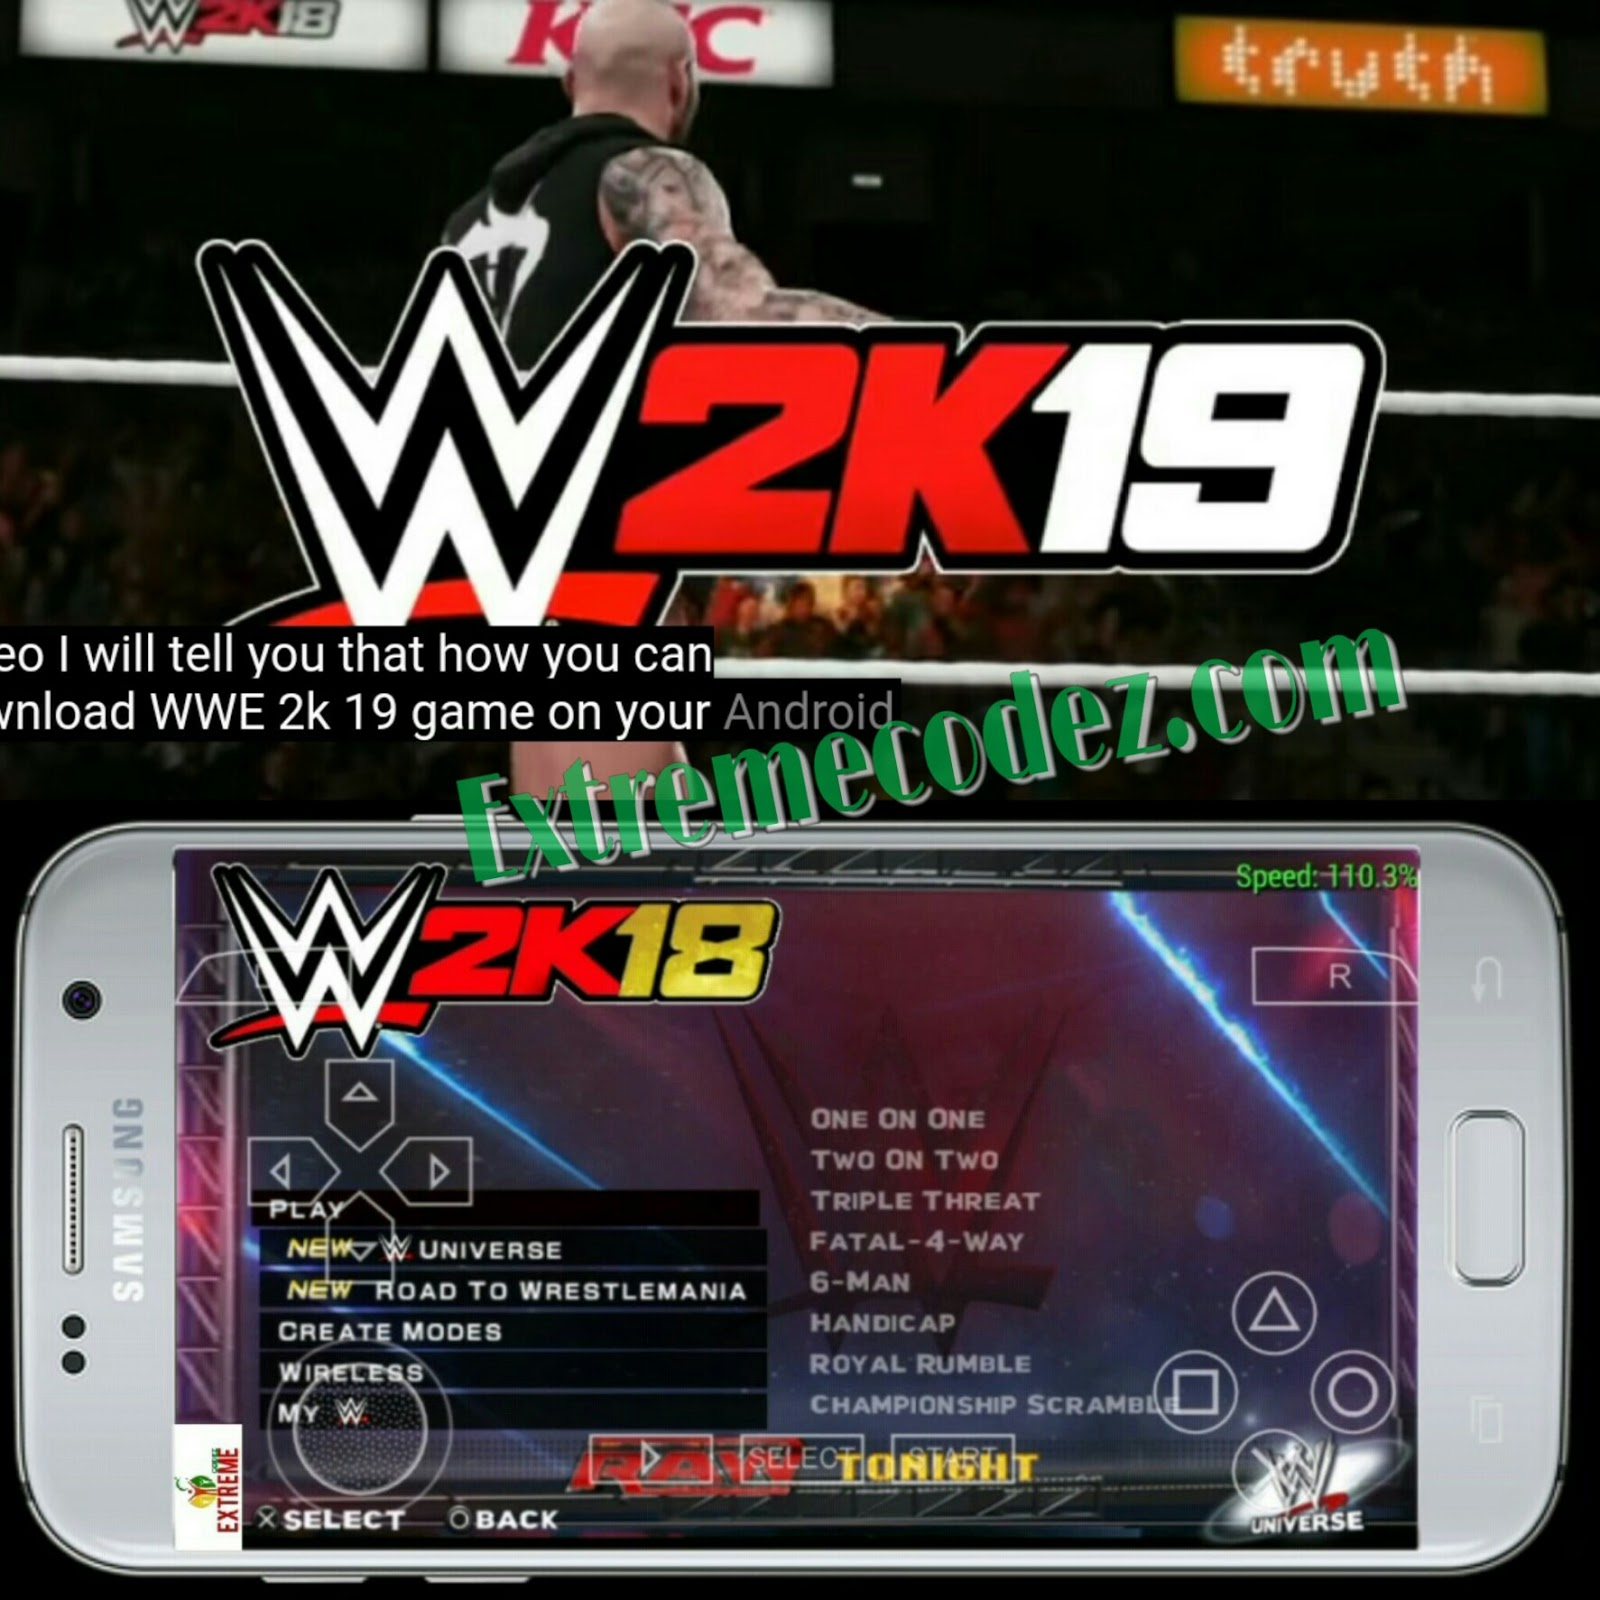 Beaches] Wwe 2k18 game download for android ppsspp iso with